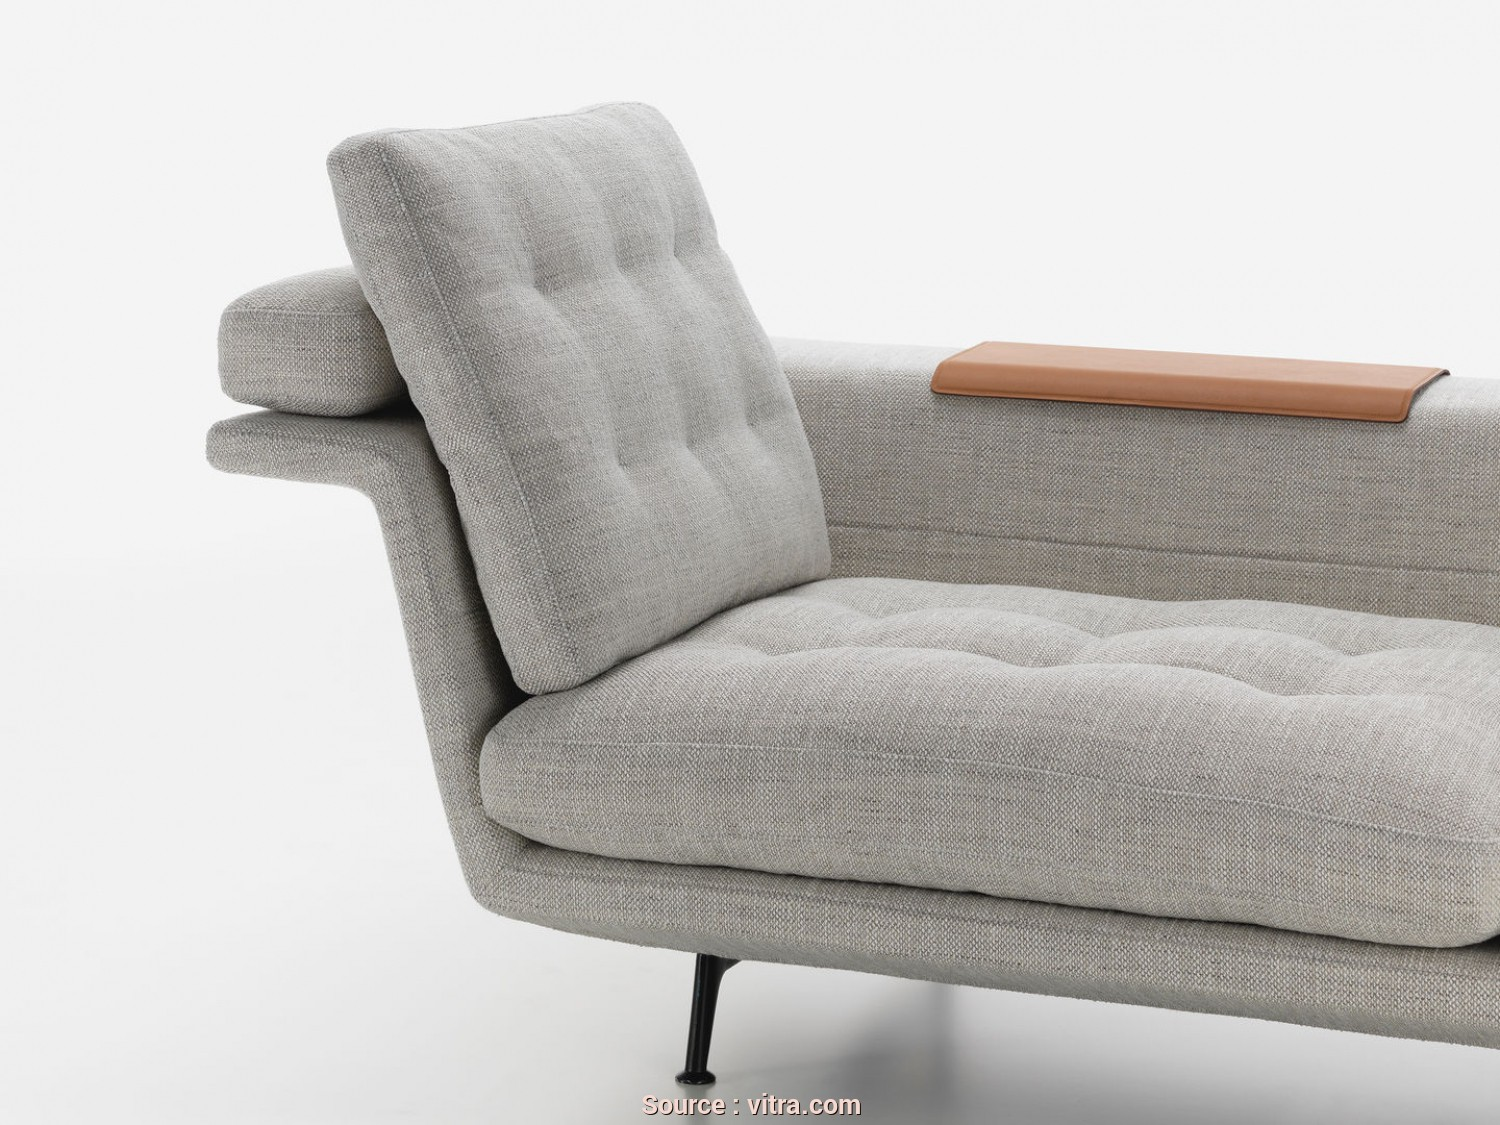 Divano Chaise Longue Dwg, Magnifico Thanks To, Open Composition Of Grand Sofà, The Spatial Options This Creates, It Is Possible To, Behind, Sofa, Use, Fabric-Covered Ledge